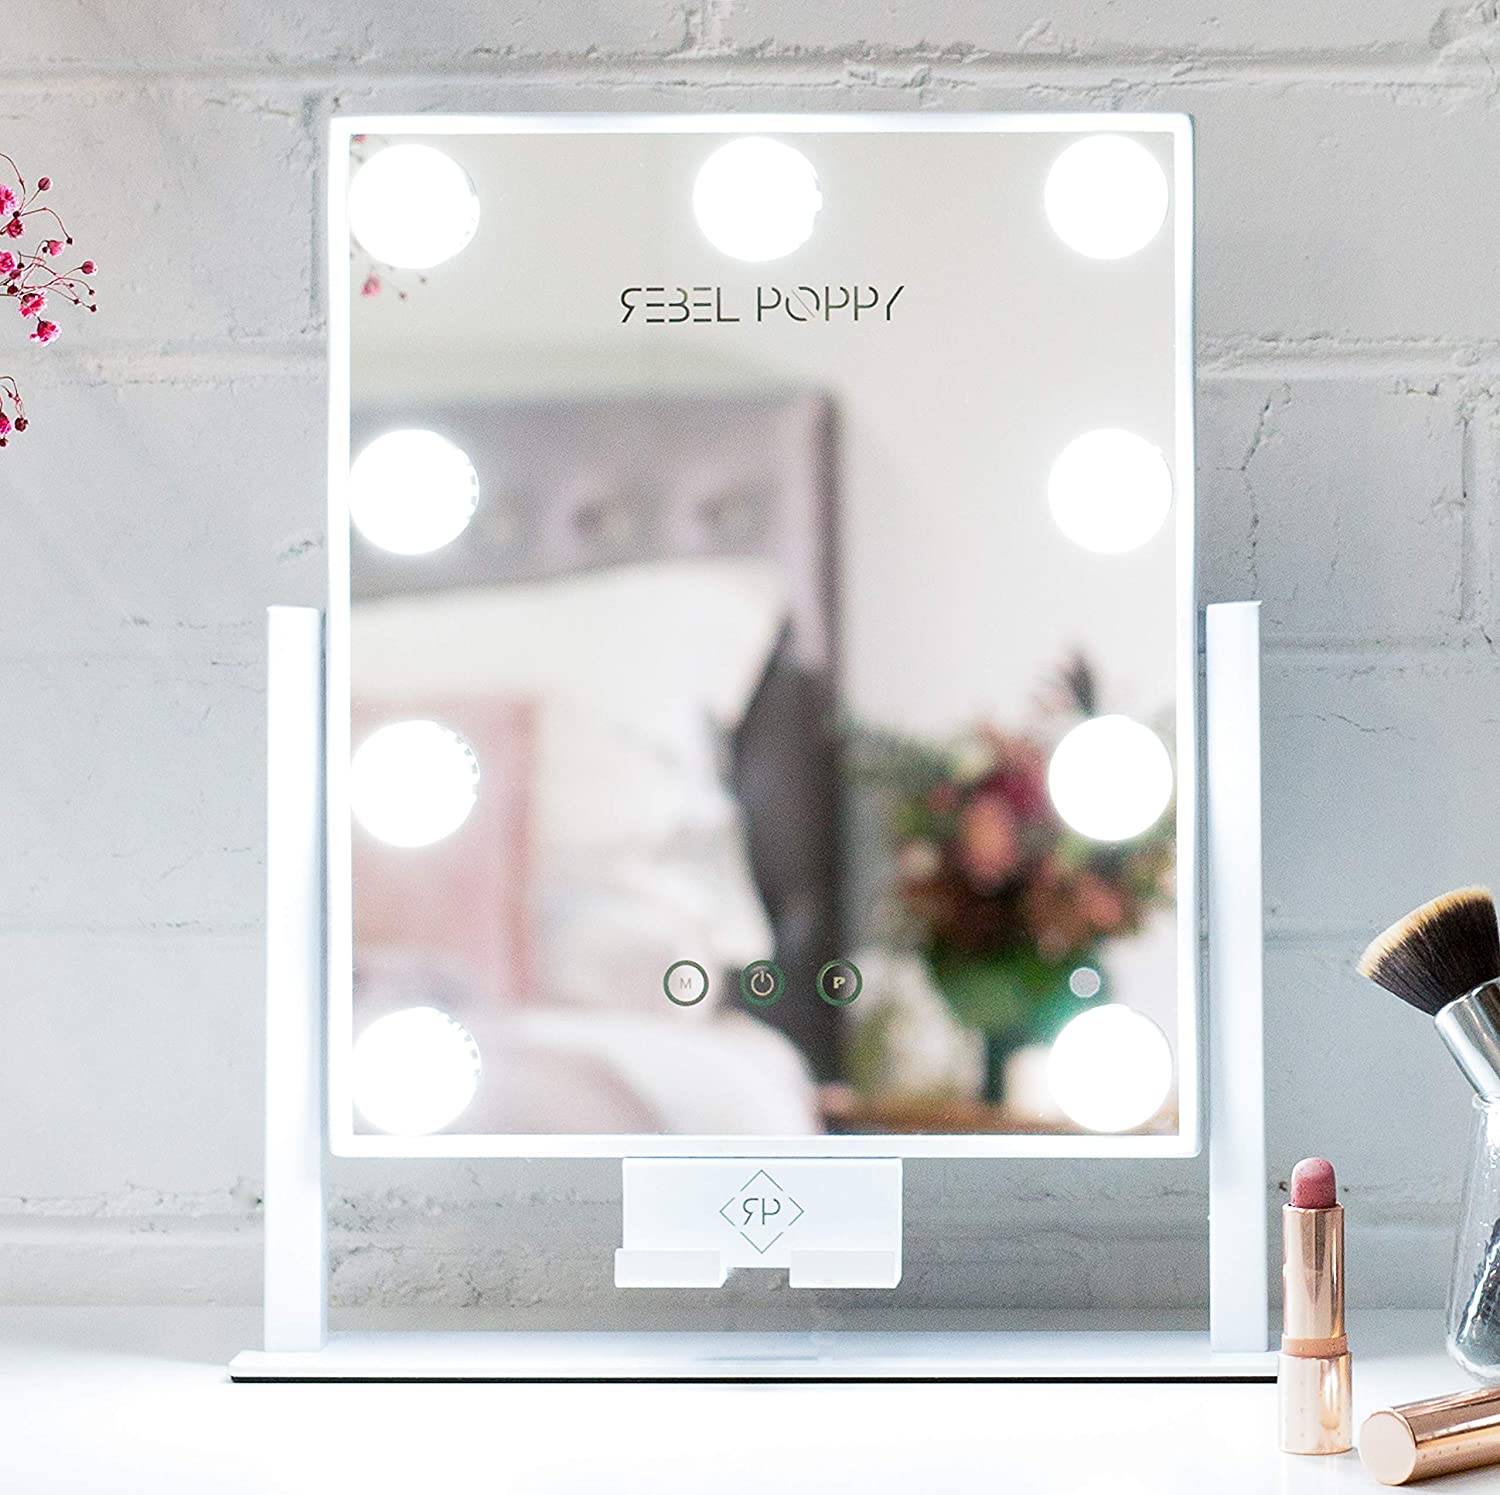 Rebel Poppy Lighted Makeup Mirror – Vanity Mirror with Lights, Phone Holder with 3 Colour Touch Control, Replaceable and Dimmable LED Bulbs, Hollywood Style Vanity Mirror, White